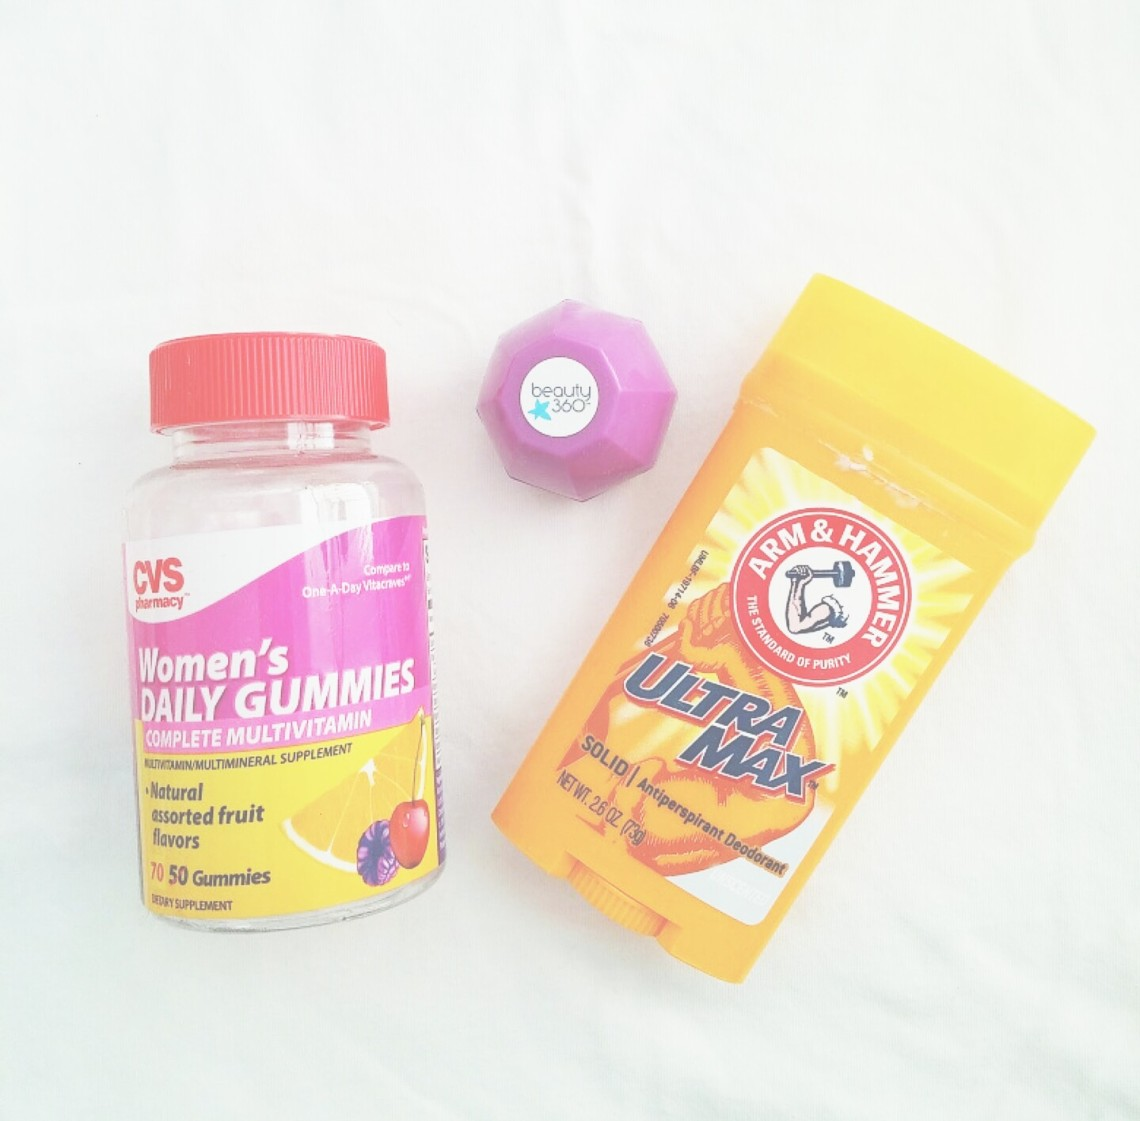 Arm & Hammer Antiperspirant and Beauty360 Lip Balm